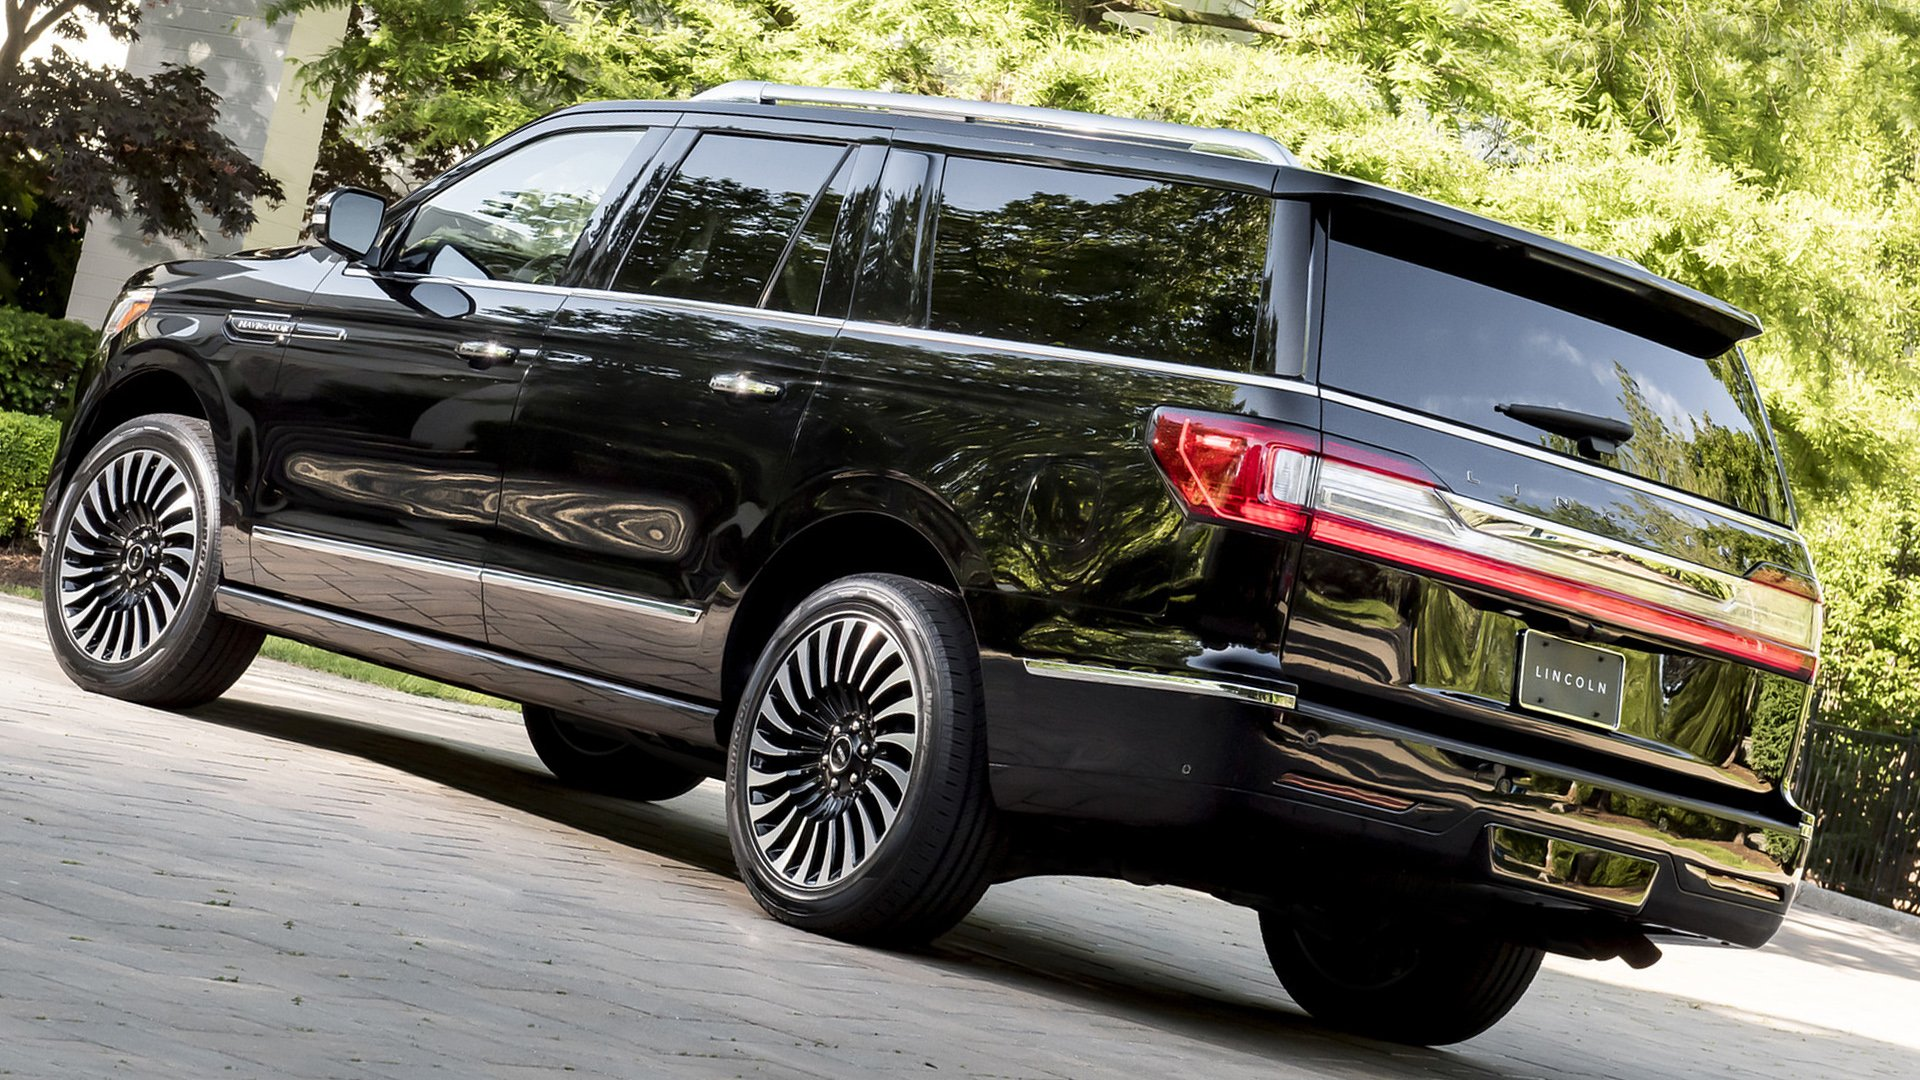 Turbo 2019 Lincoln Navigator HD